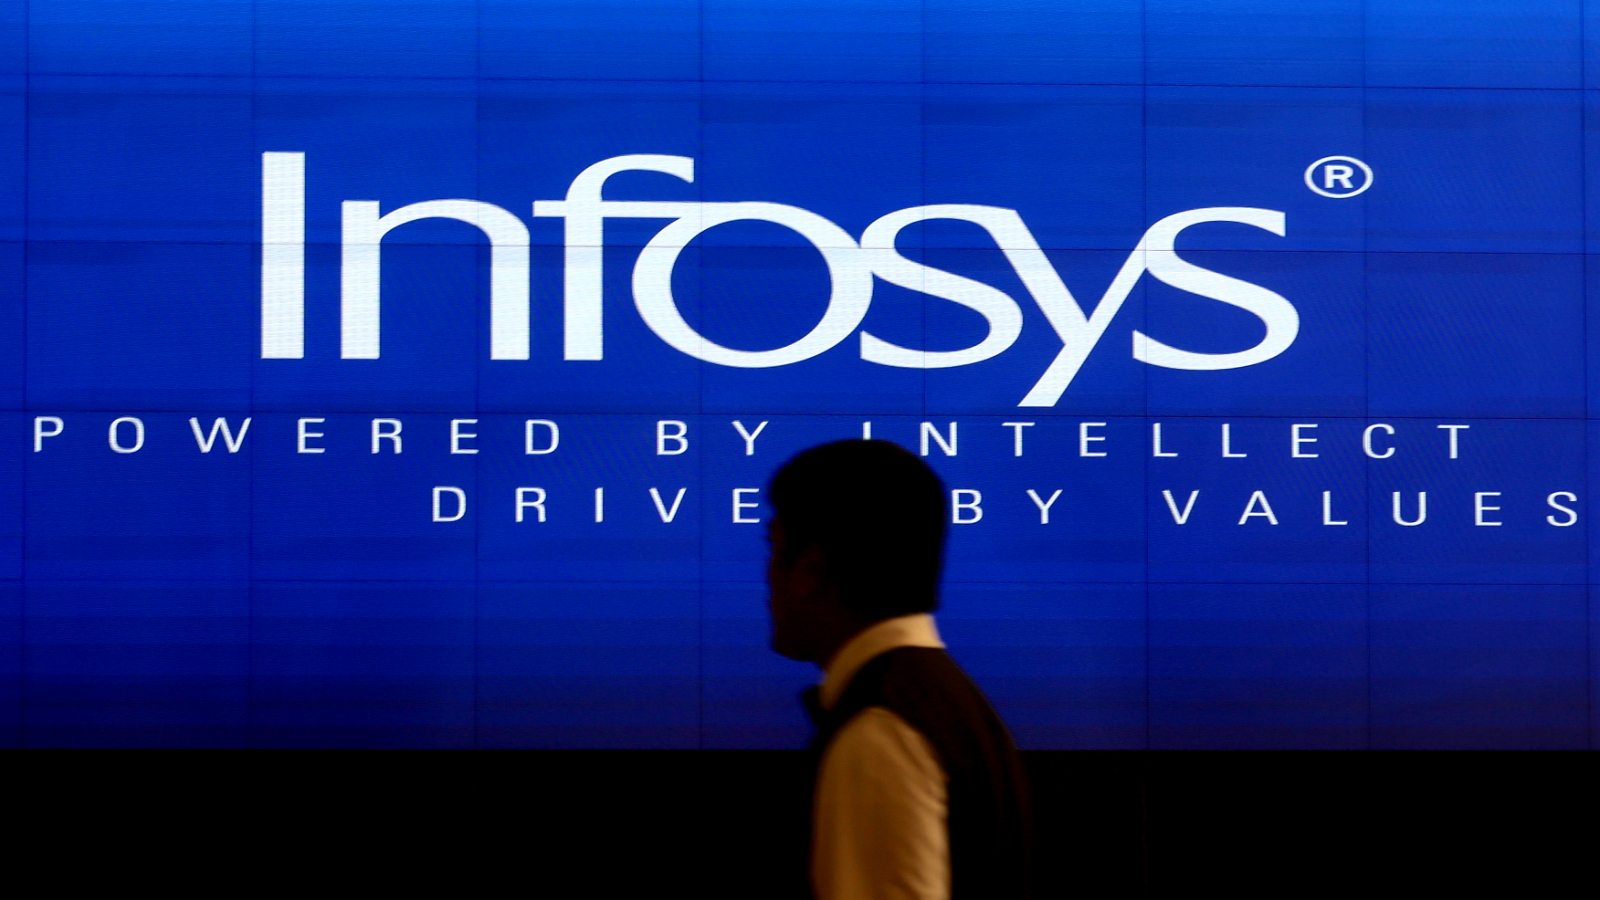 Indian software specialists enter the Infosys headquarters, in Bangalore, India, 15 July 2016, where Infosys CEO and Managing Director Vishal Sikka (unseen) announced the company's Q1 results earlier on the same day. The Indian second largest information technology and consulting company reported net profit grew 13 percent, cutting its outlook after the first quarter earnings came in below estimates. The company and its expected to have its revenue growth between 10.5 to 12 percent in constant currency terms. Sikka has set the goal to raise the company's revenue to 20 billion US dollars by 2020.